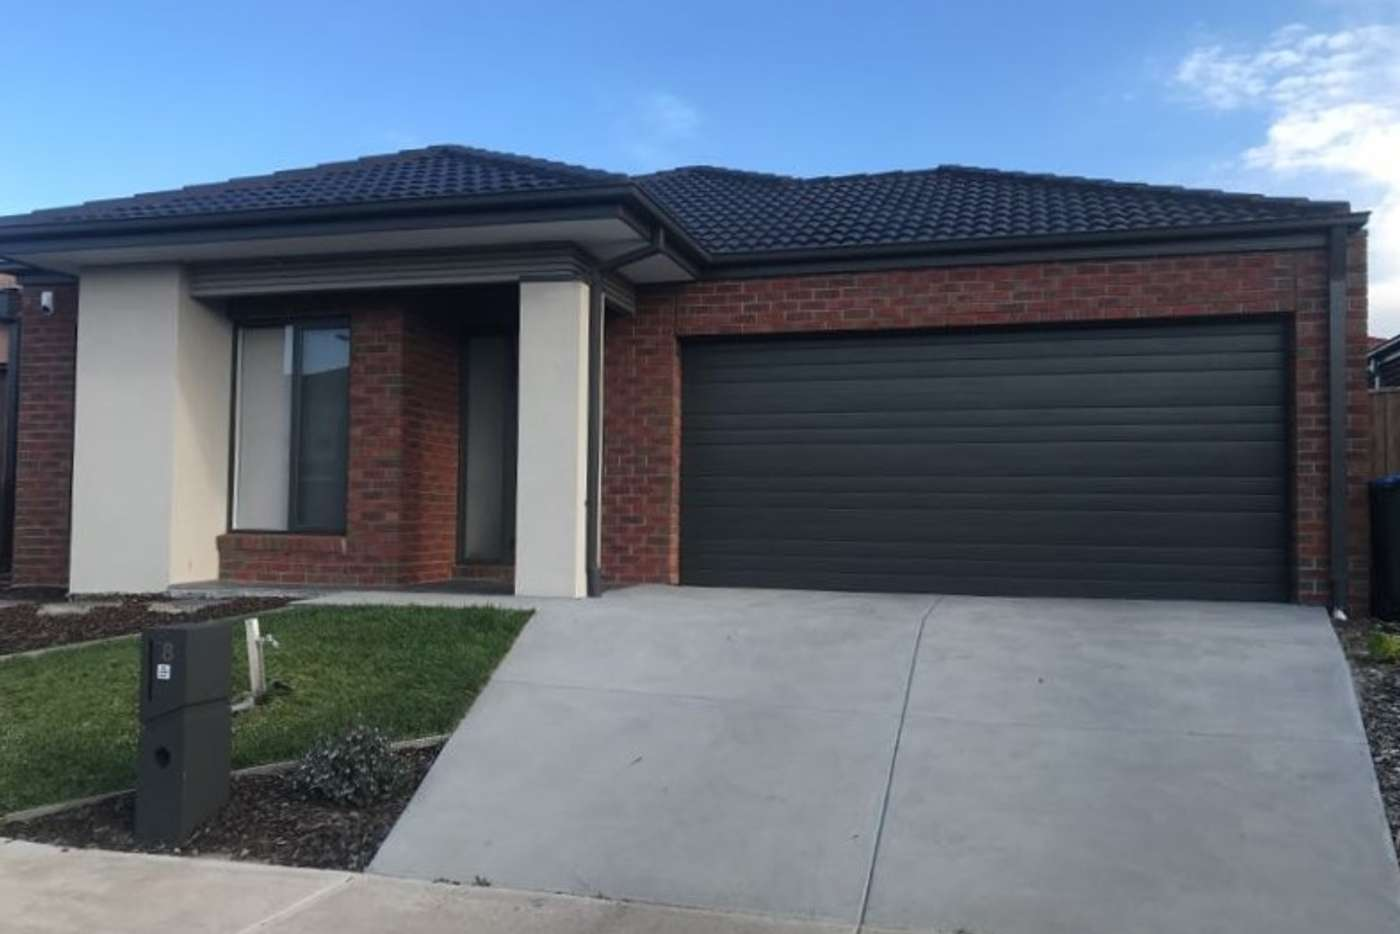 Main view of Homely house listing, 18 Rialto Street, Point Cook VIC 3030